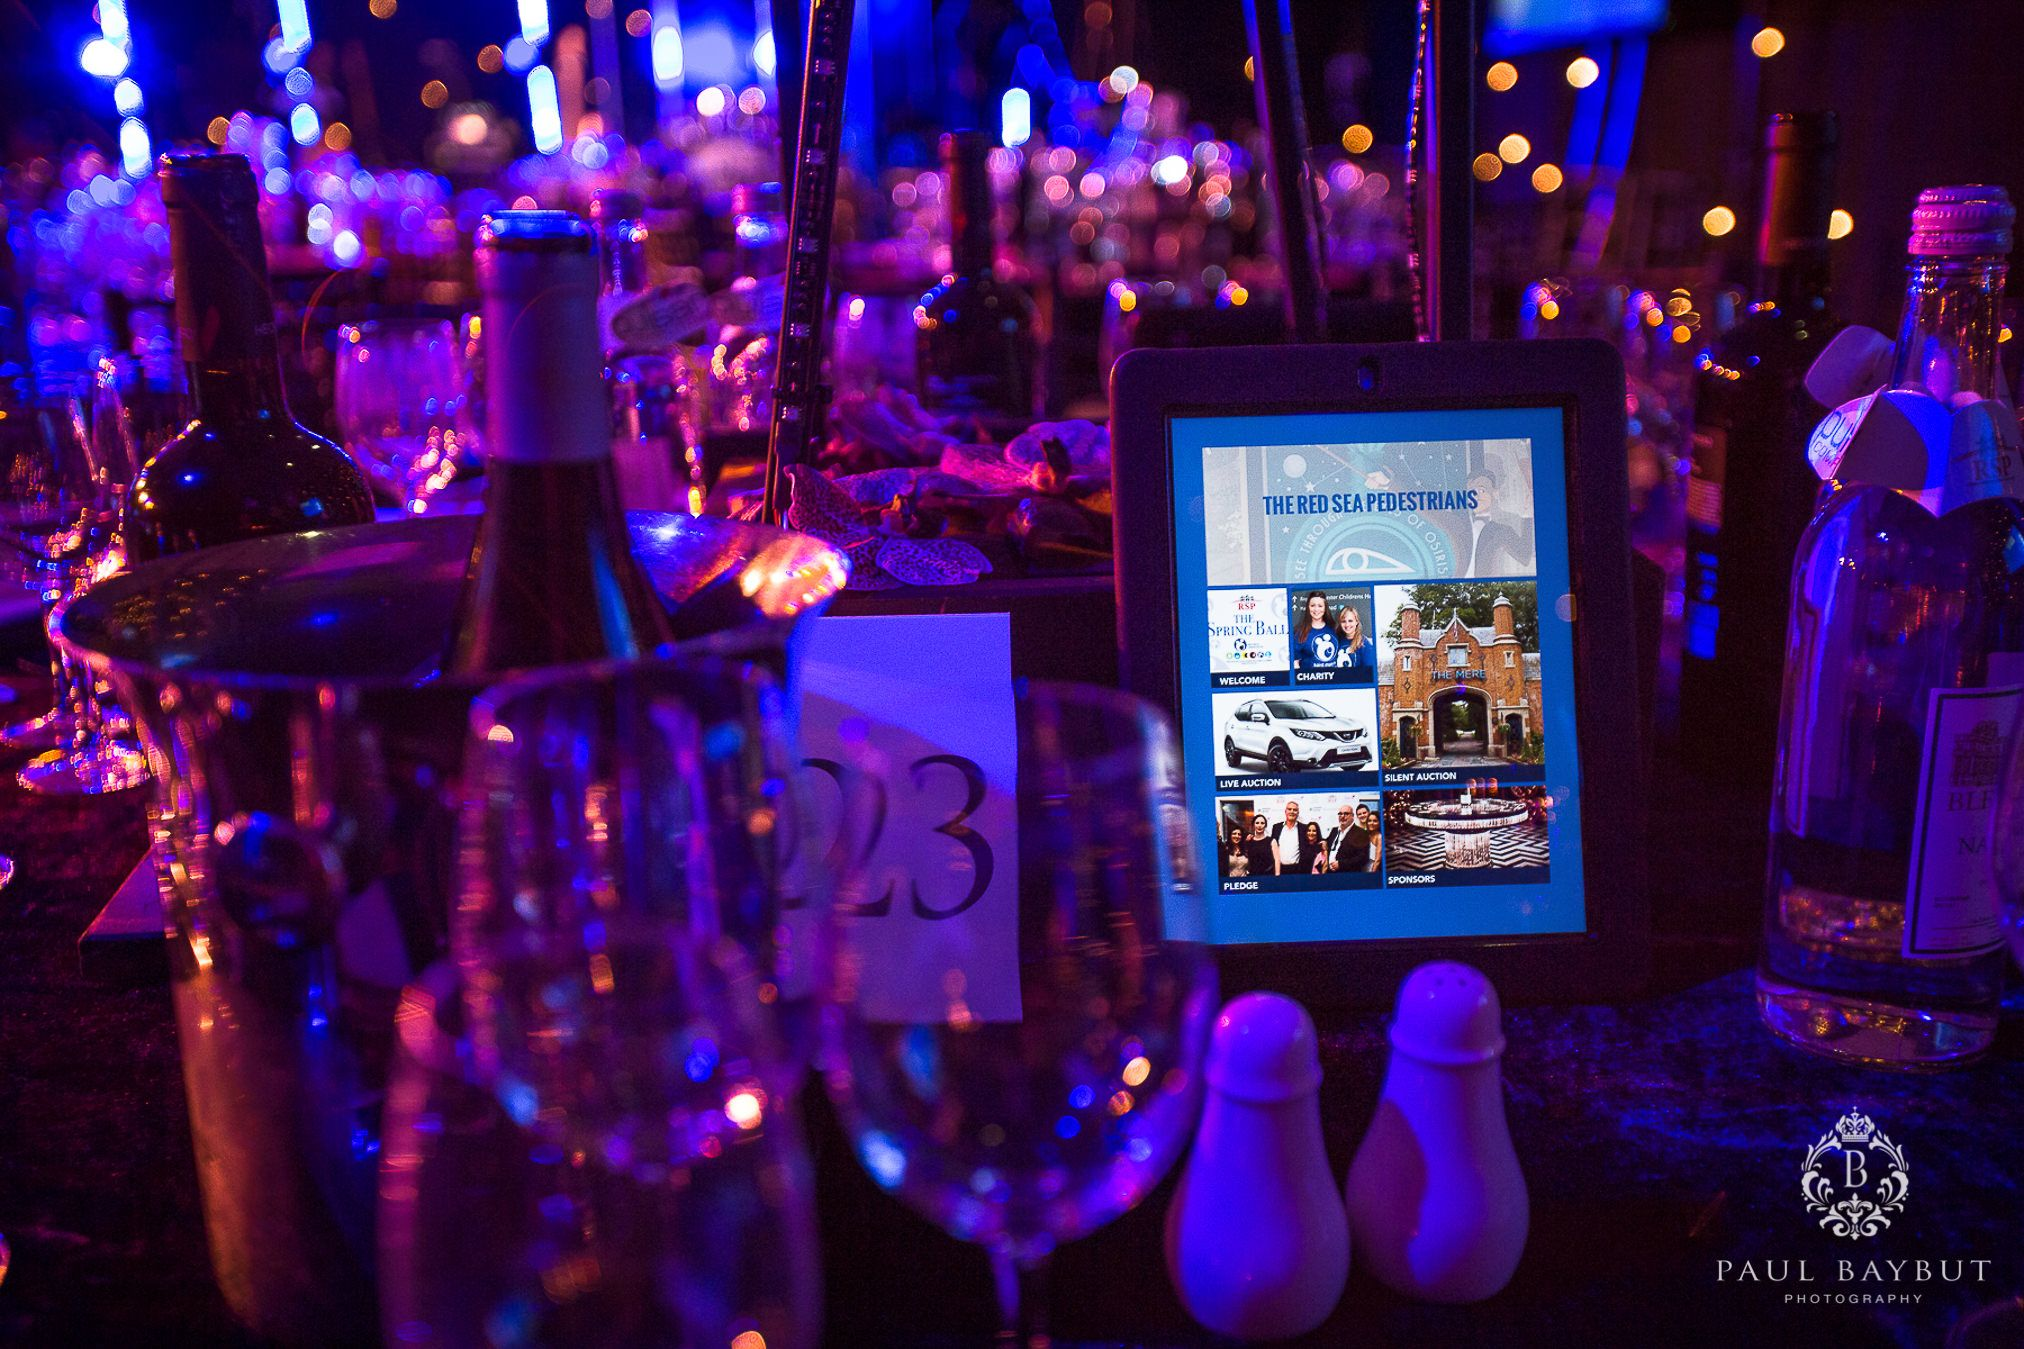 The Red Sea Pestrians charity ball event advertising displayed on a screen at a Manchester hotel